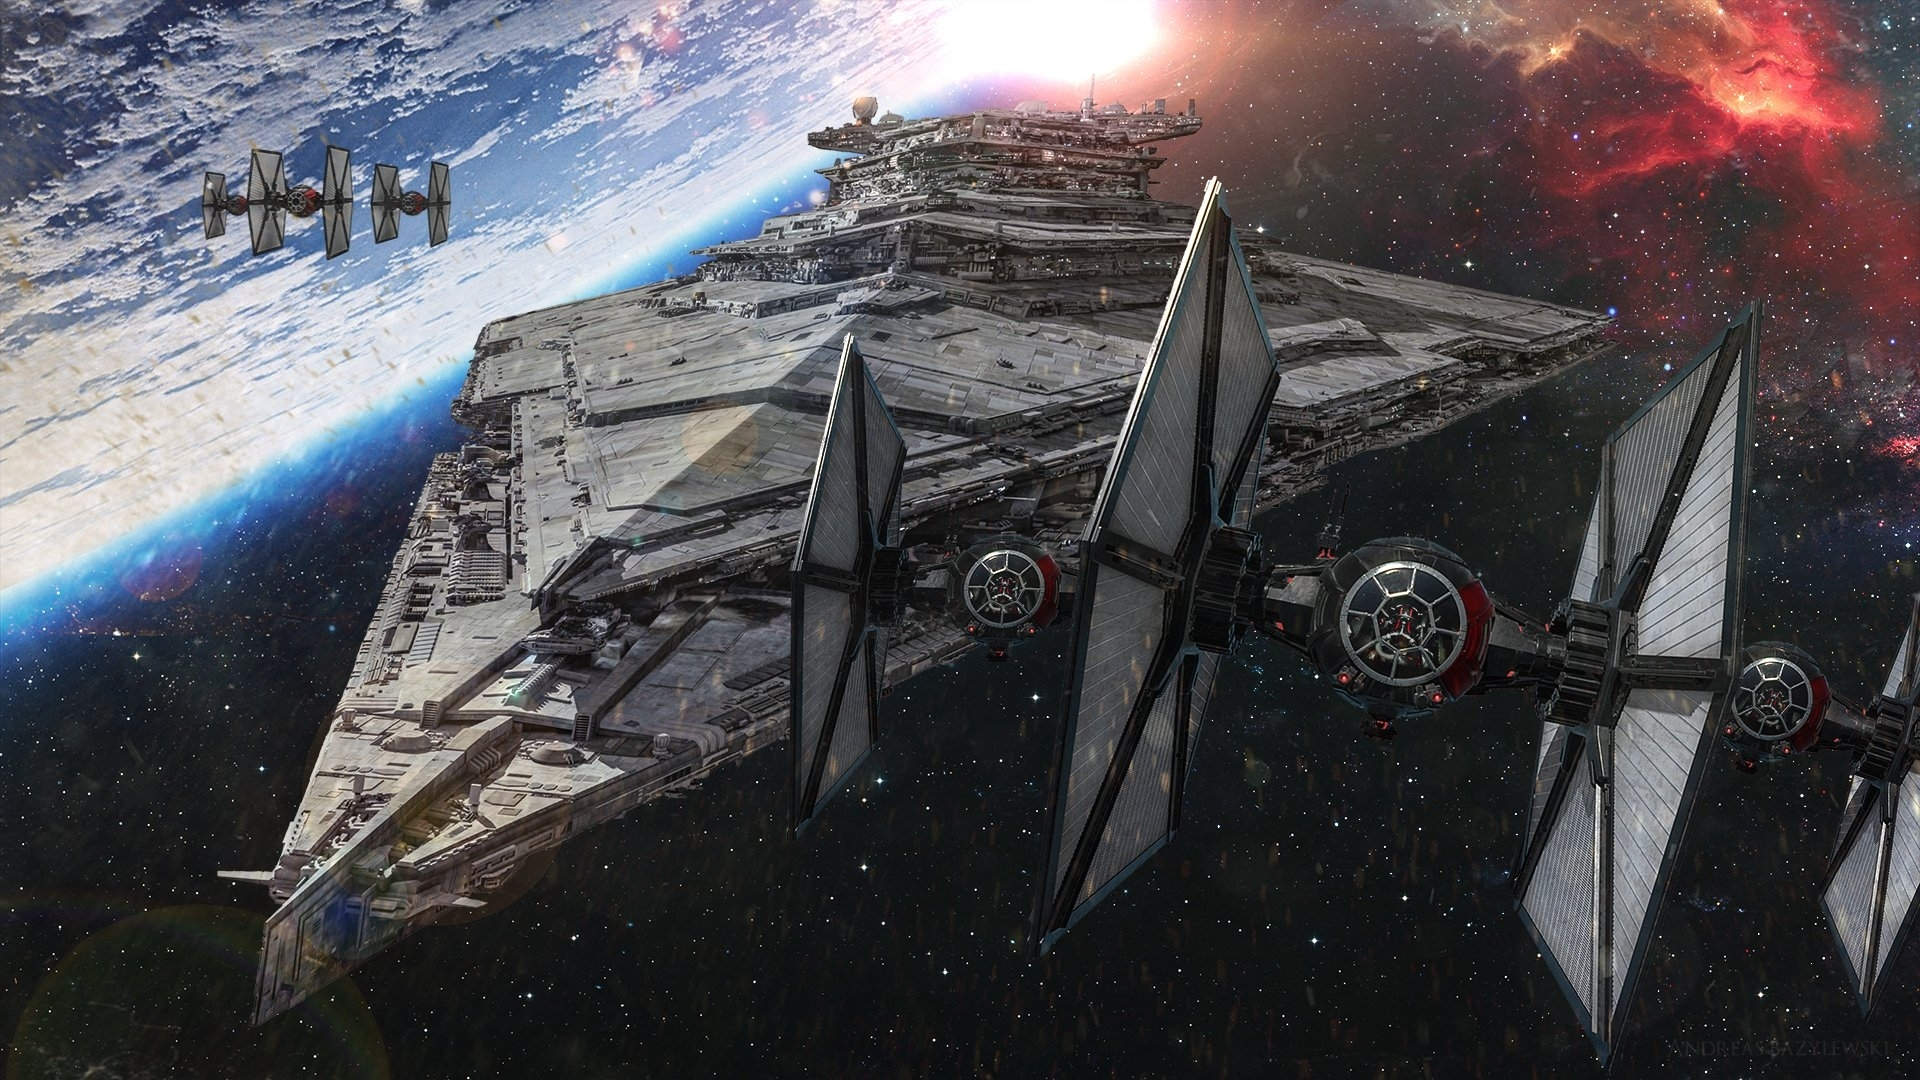 69 star destroyer hd wallpapers   background images - wallpaper abyss